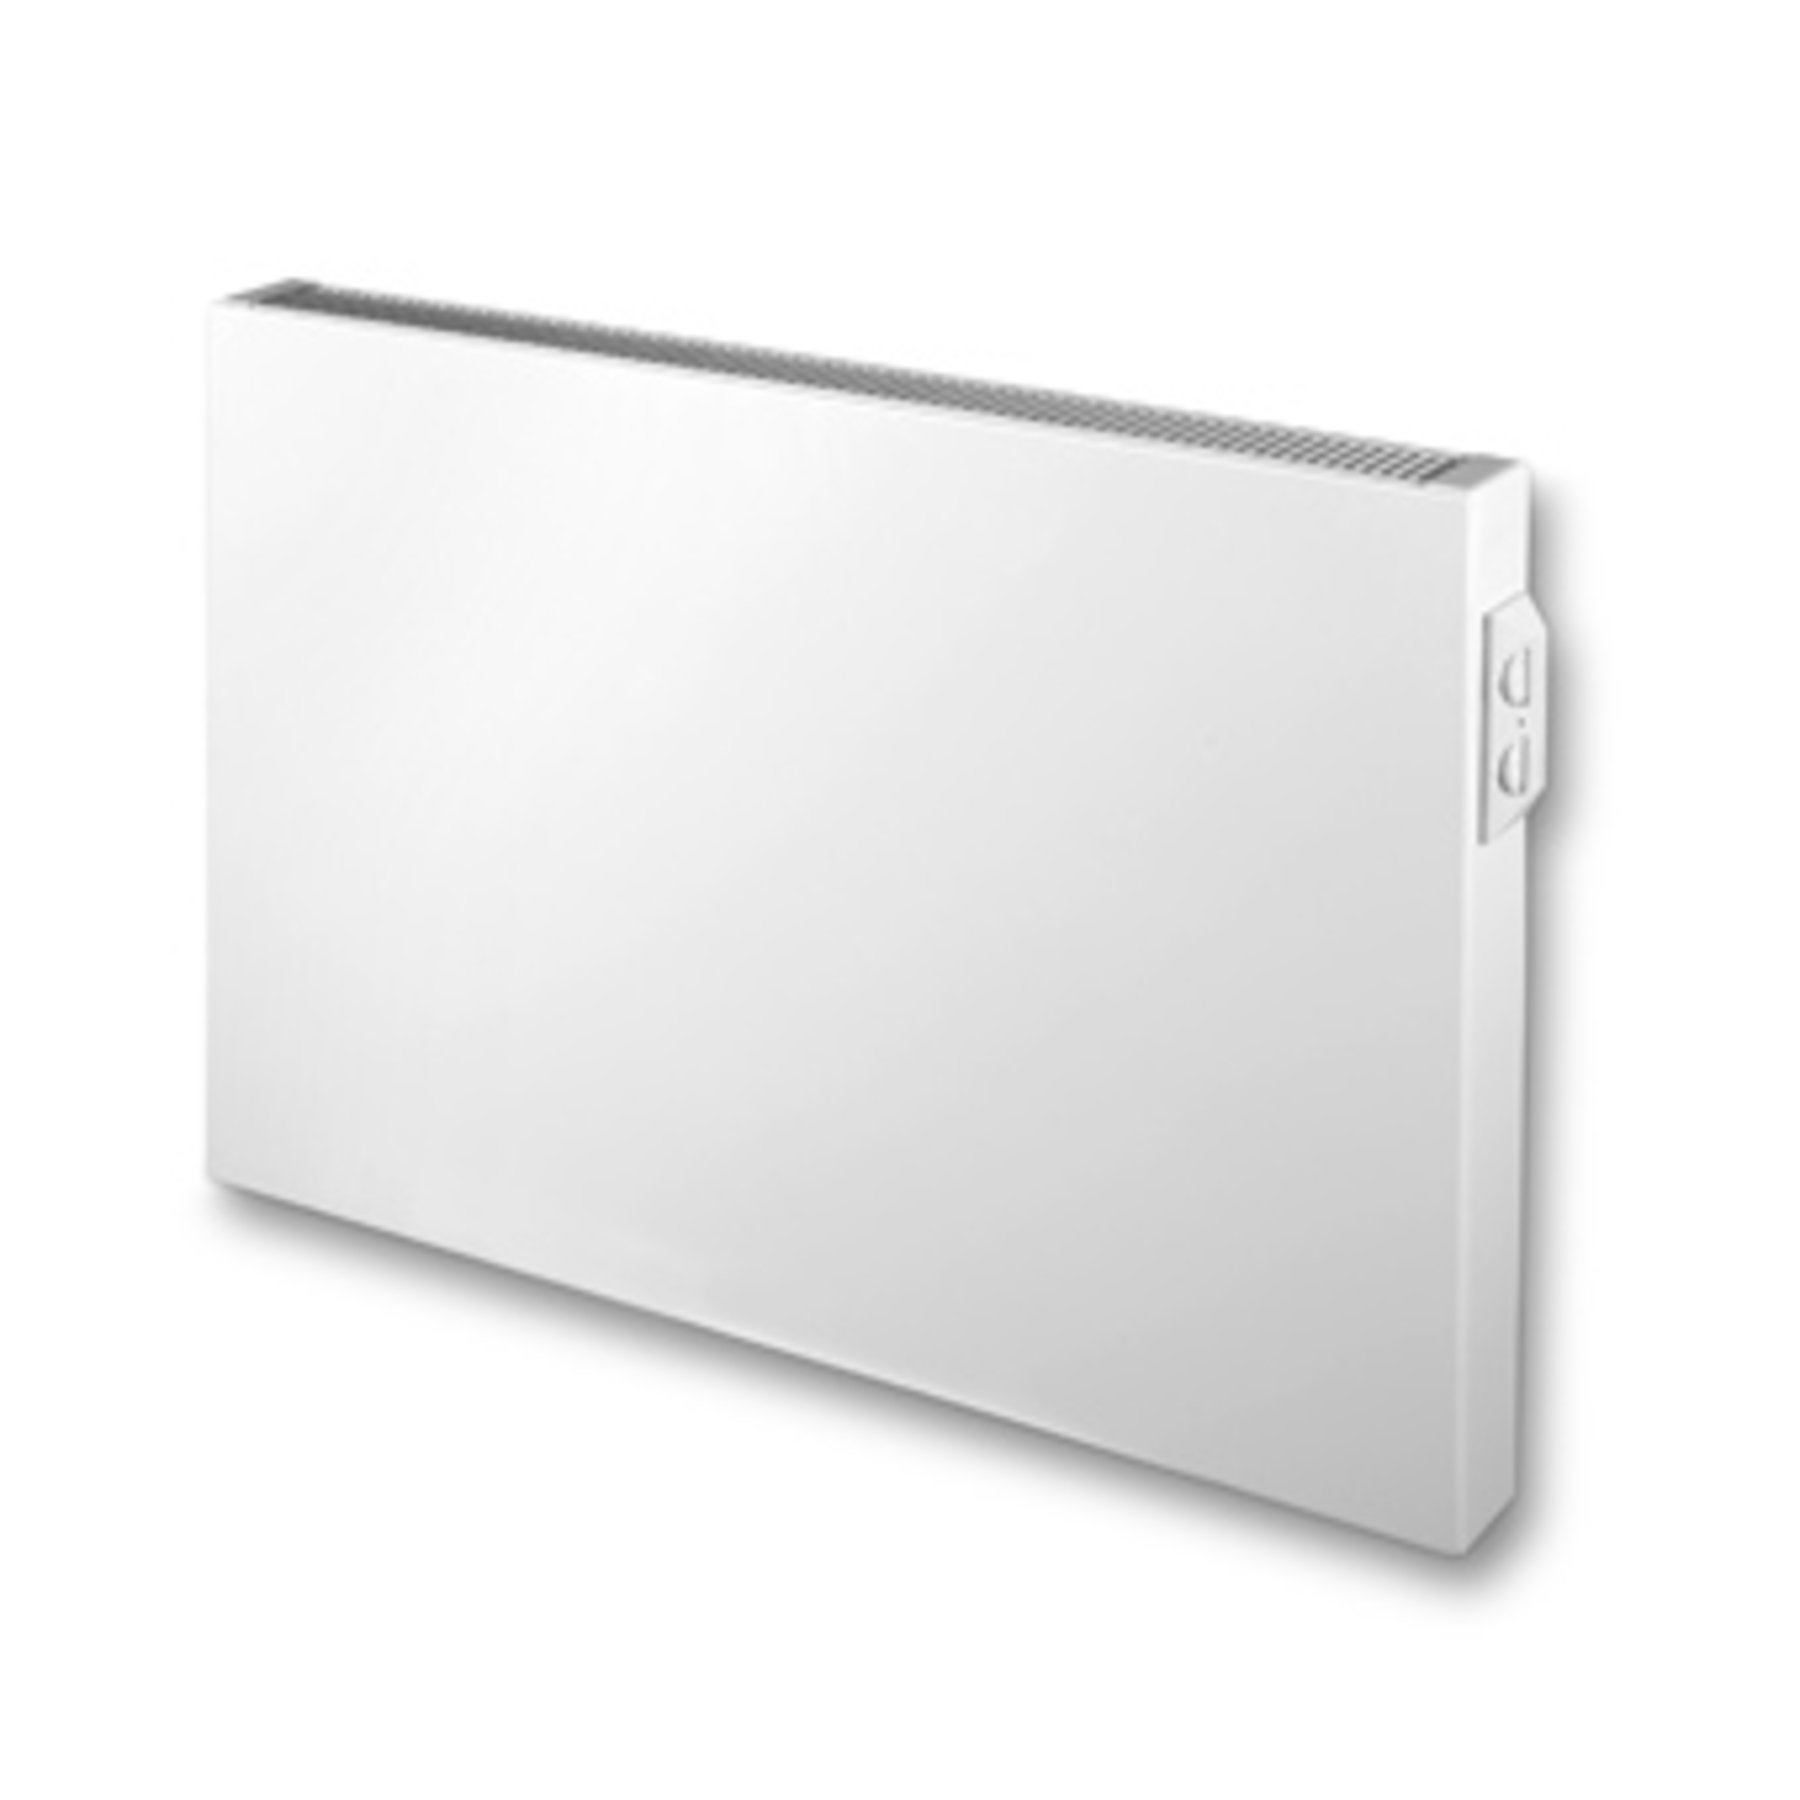 Vasco E panel radiator elektrisch 1000x600mm 1250 watt wit